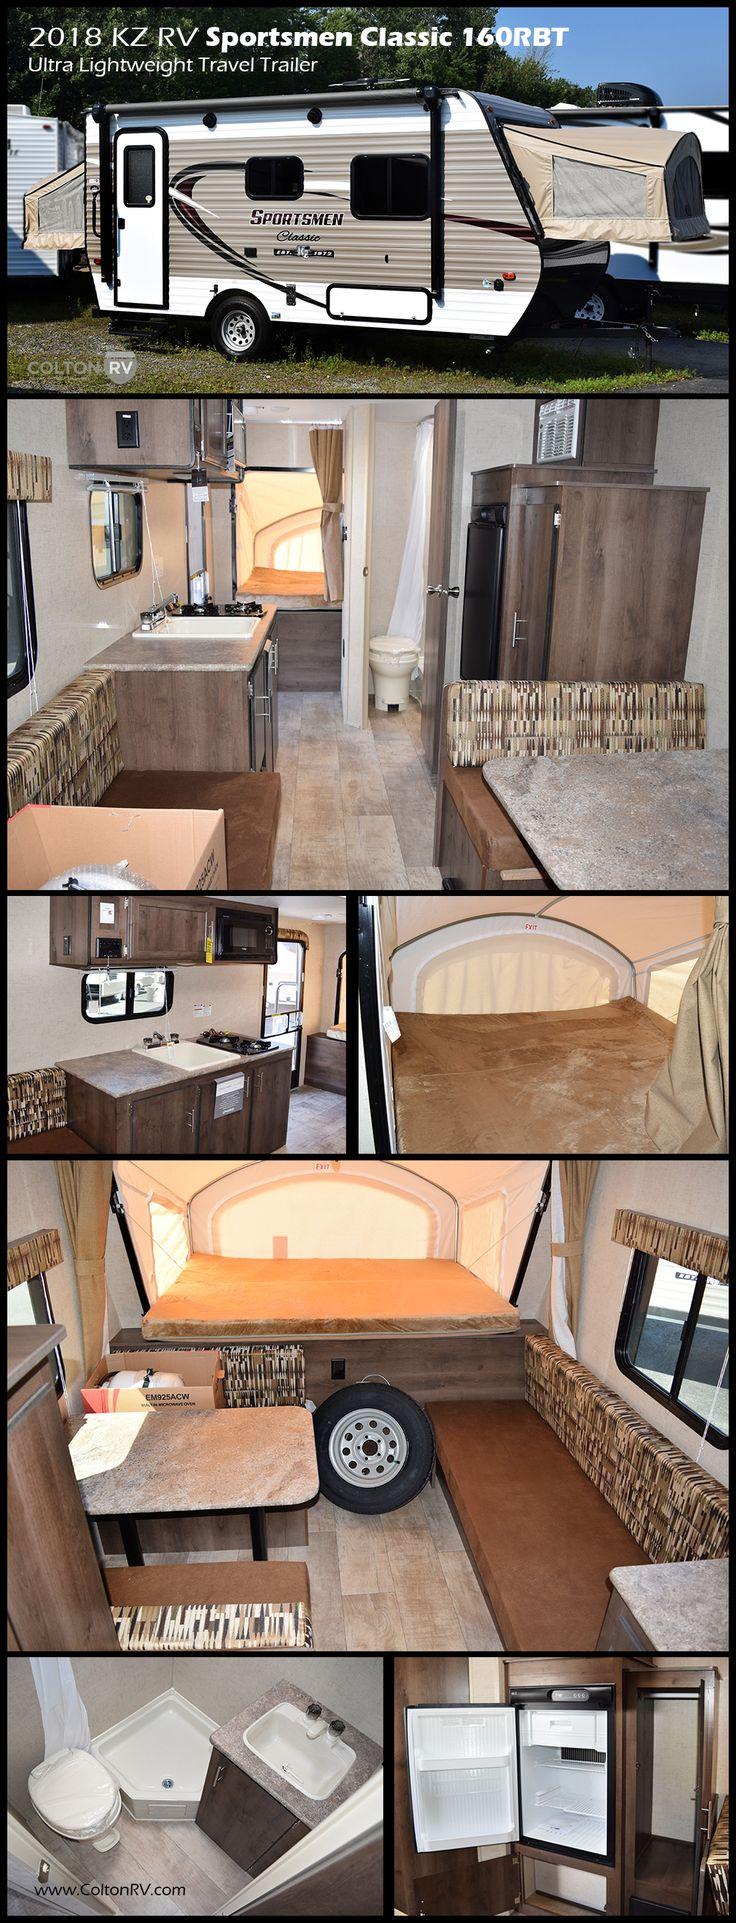 This KZ RV Sportsmen Classic 160RBT travel trailer is ultra-lightweight and easy to tow with all the comforts of home!